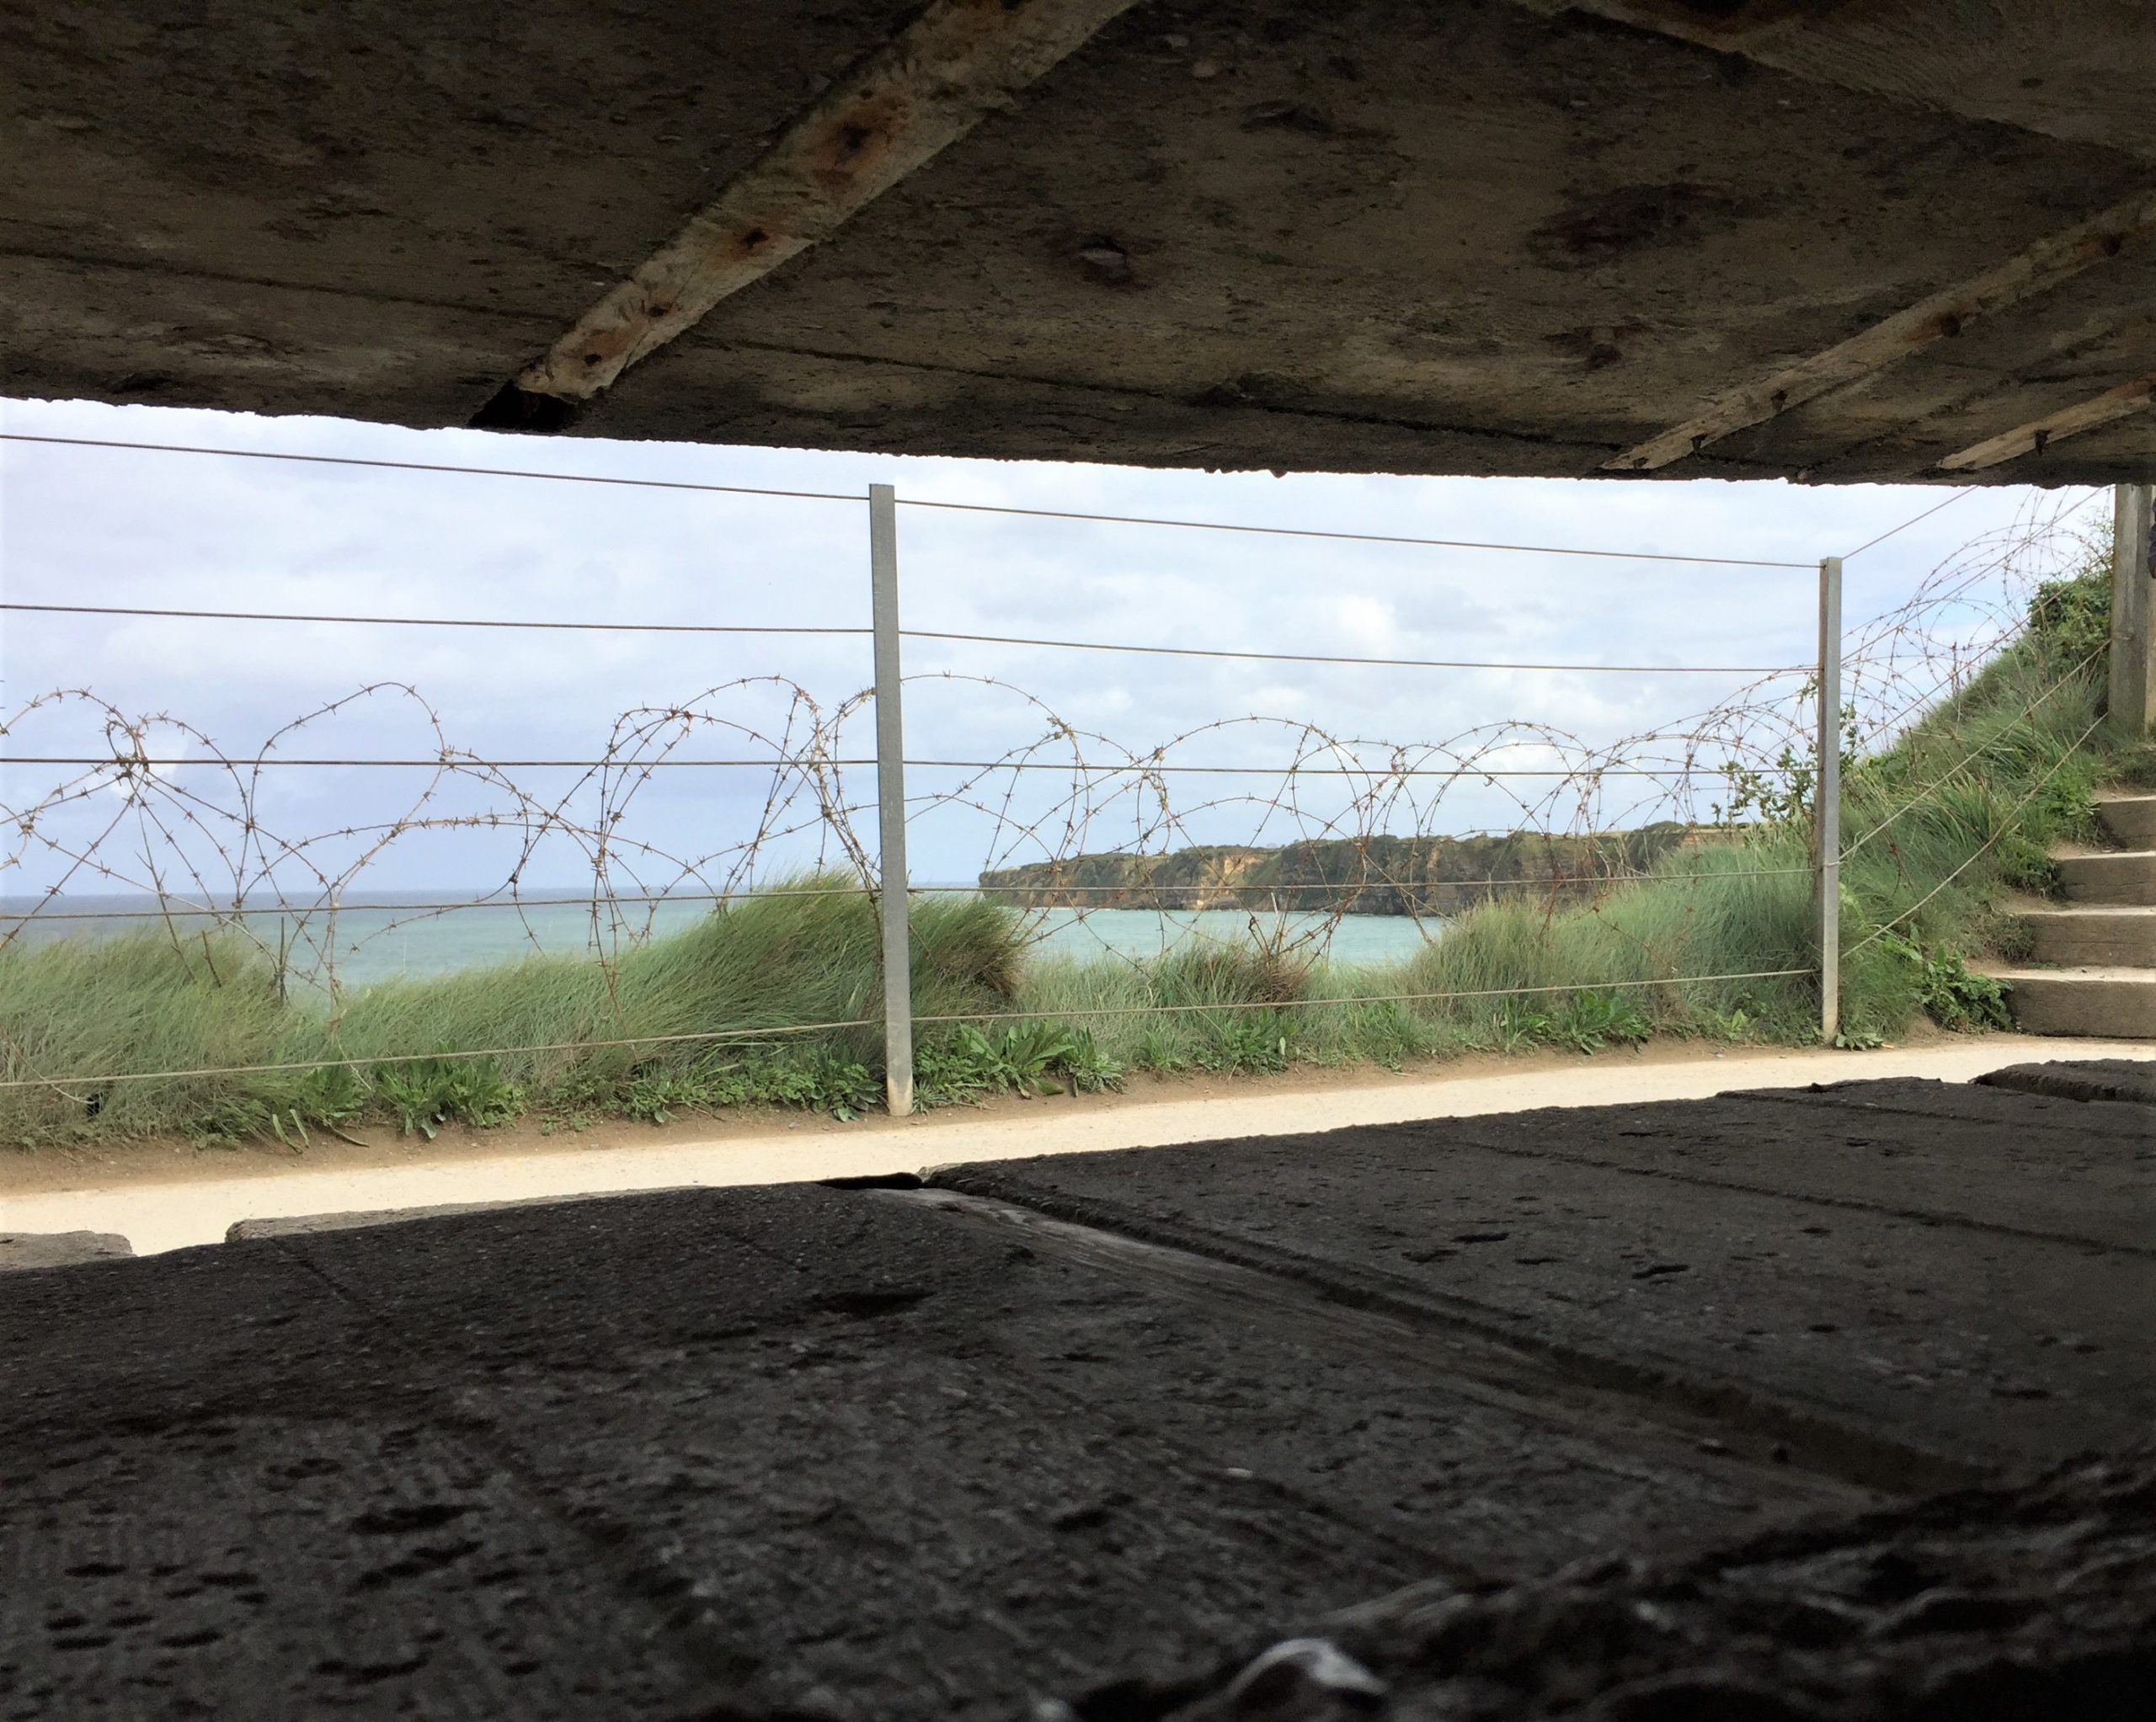 View from inside observation post at tip of Pointe du Hoc (Photo: Sarah Sundin, September 2017)